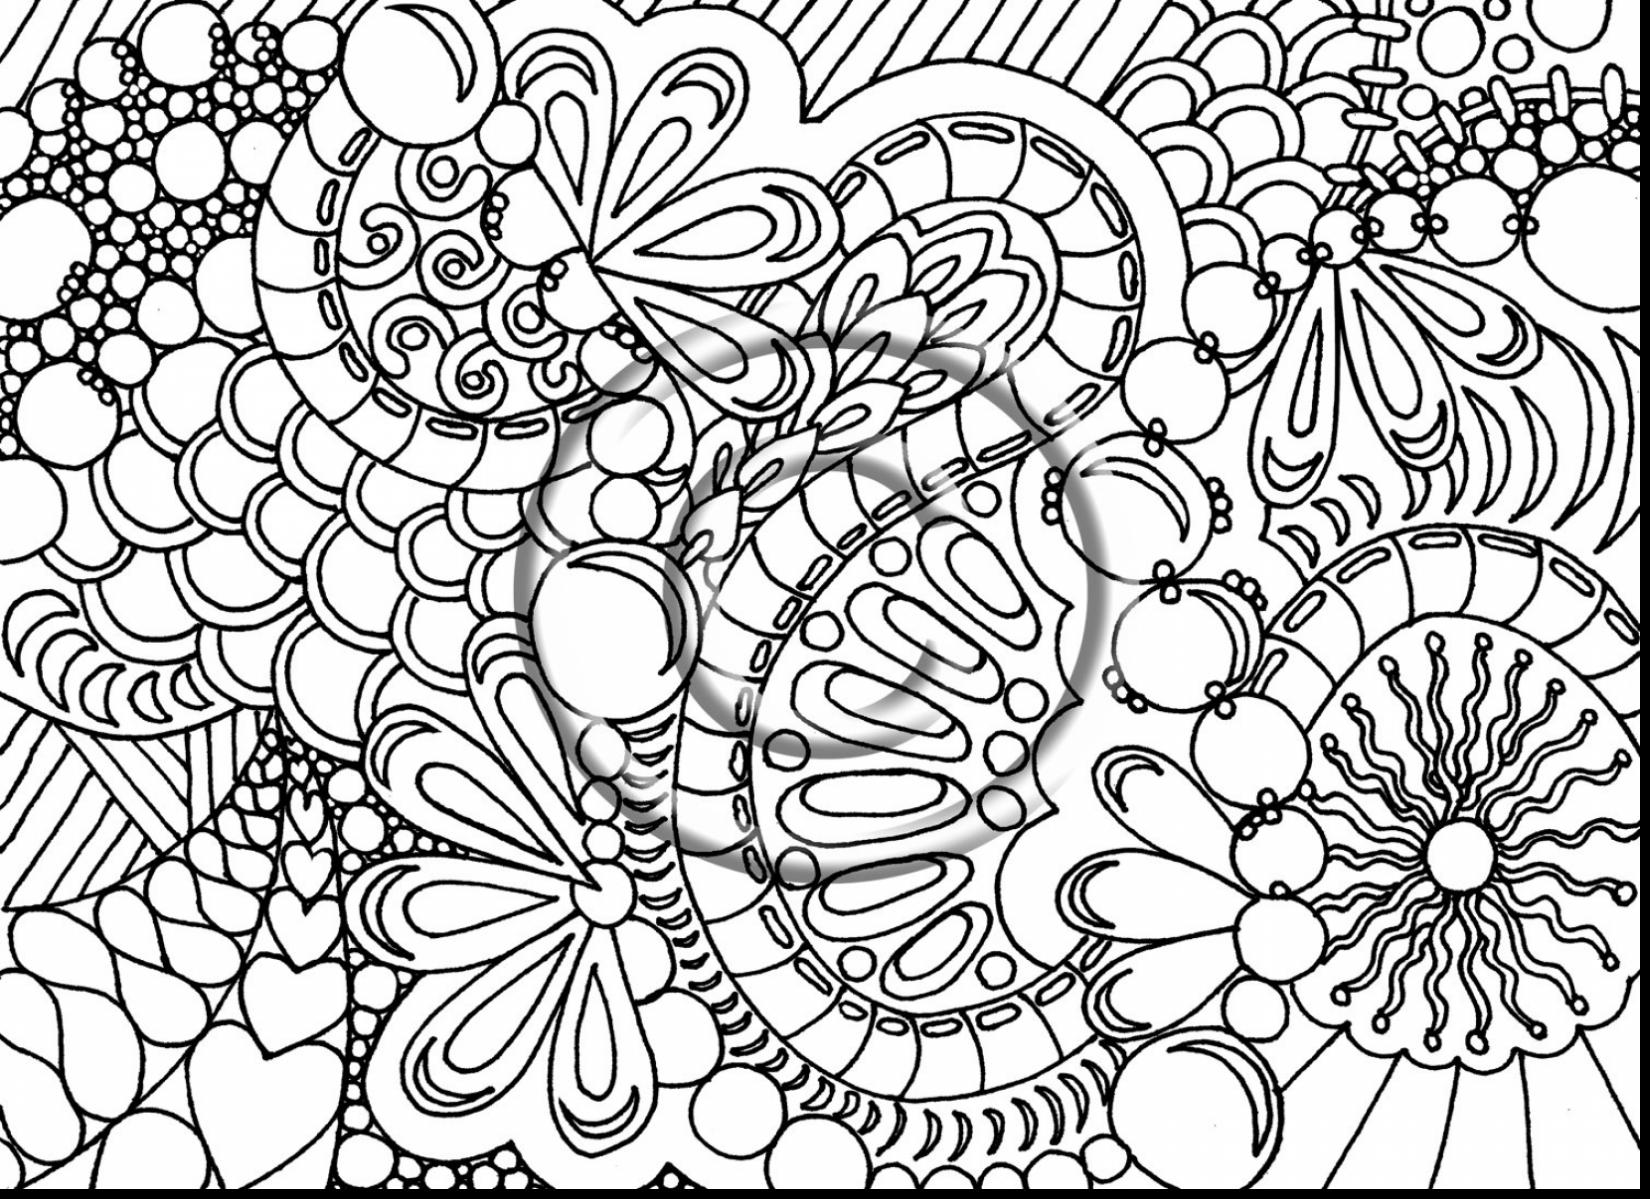 coloring book for adults printable free adult printable coloring pages roses heart coloring adults for coloring book printable